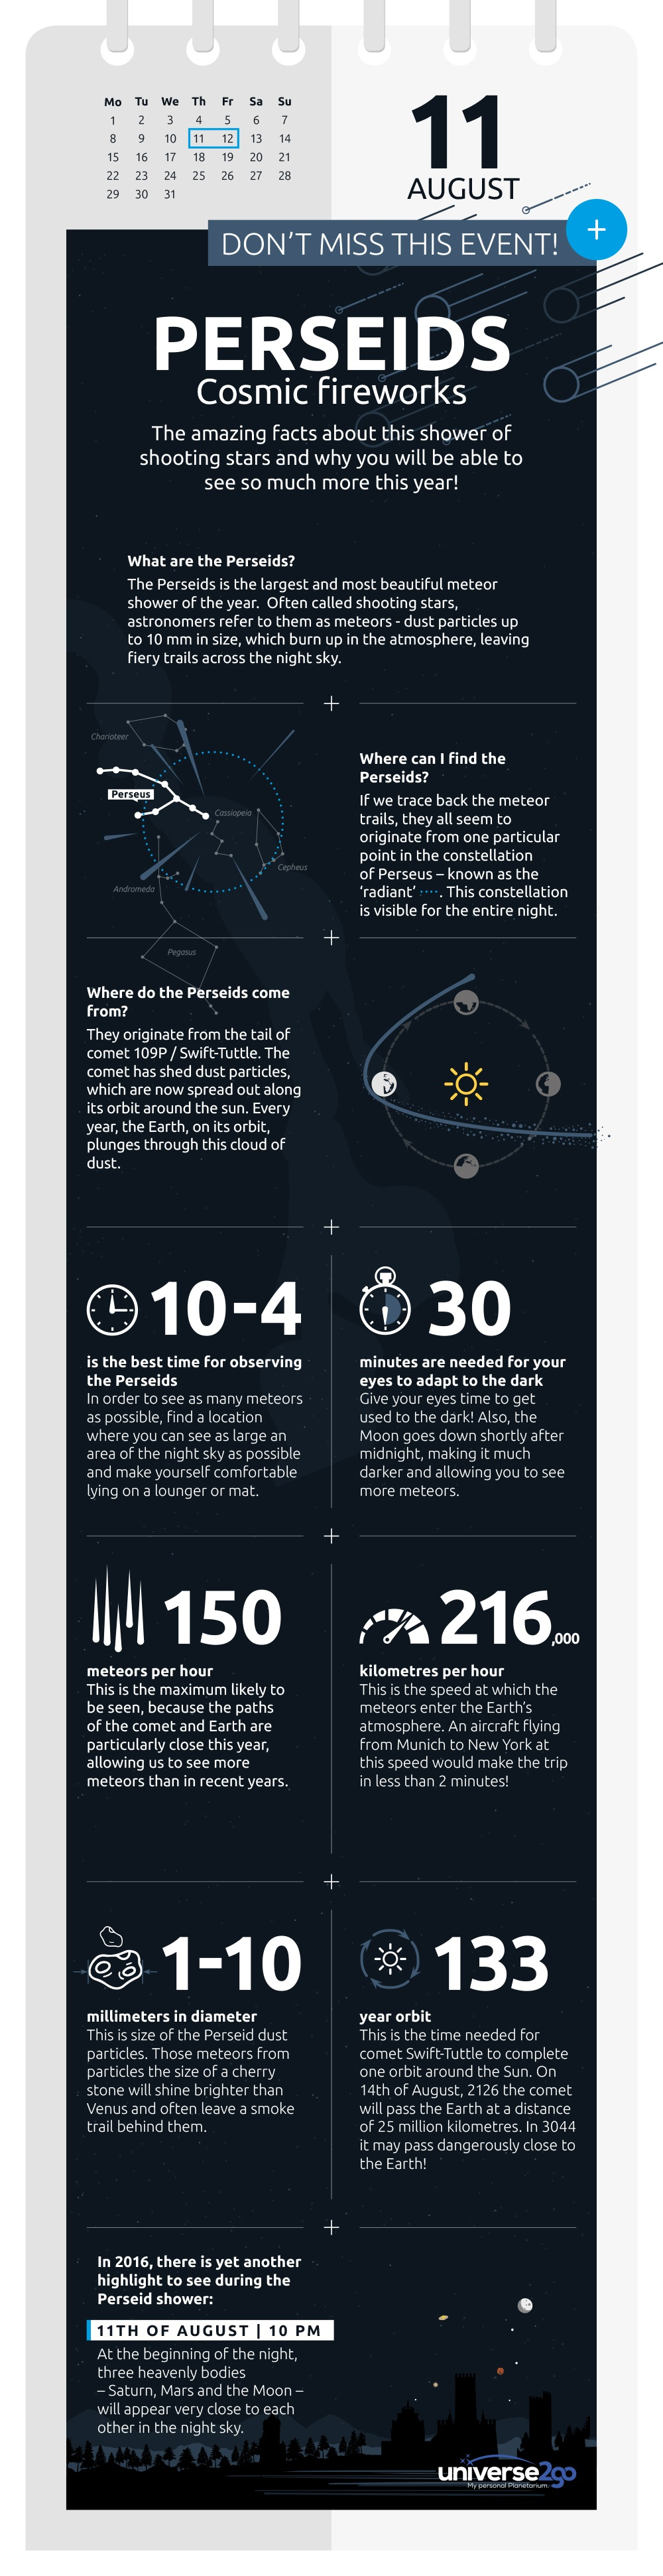 info-graphic-perseid-meteor-shower-2016-shooting-falling-star